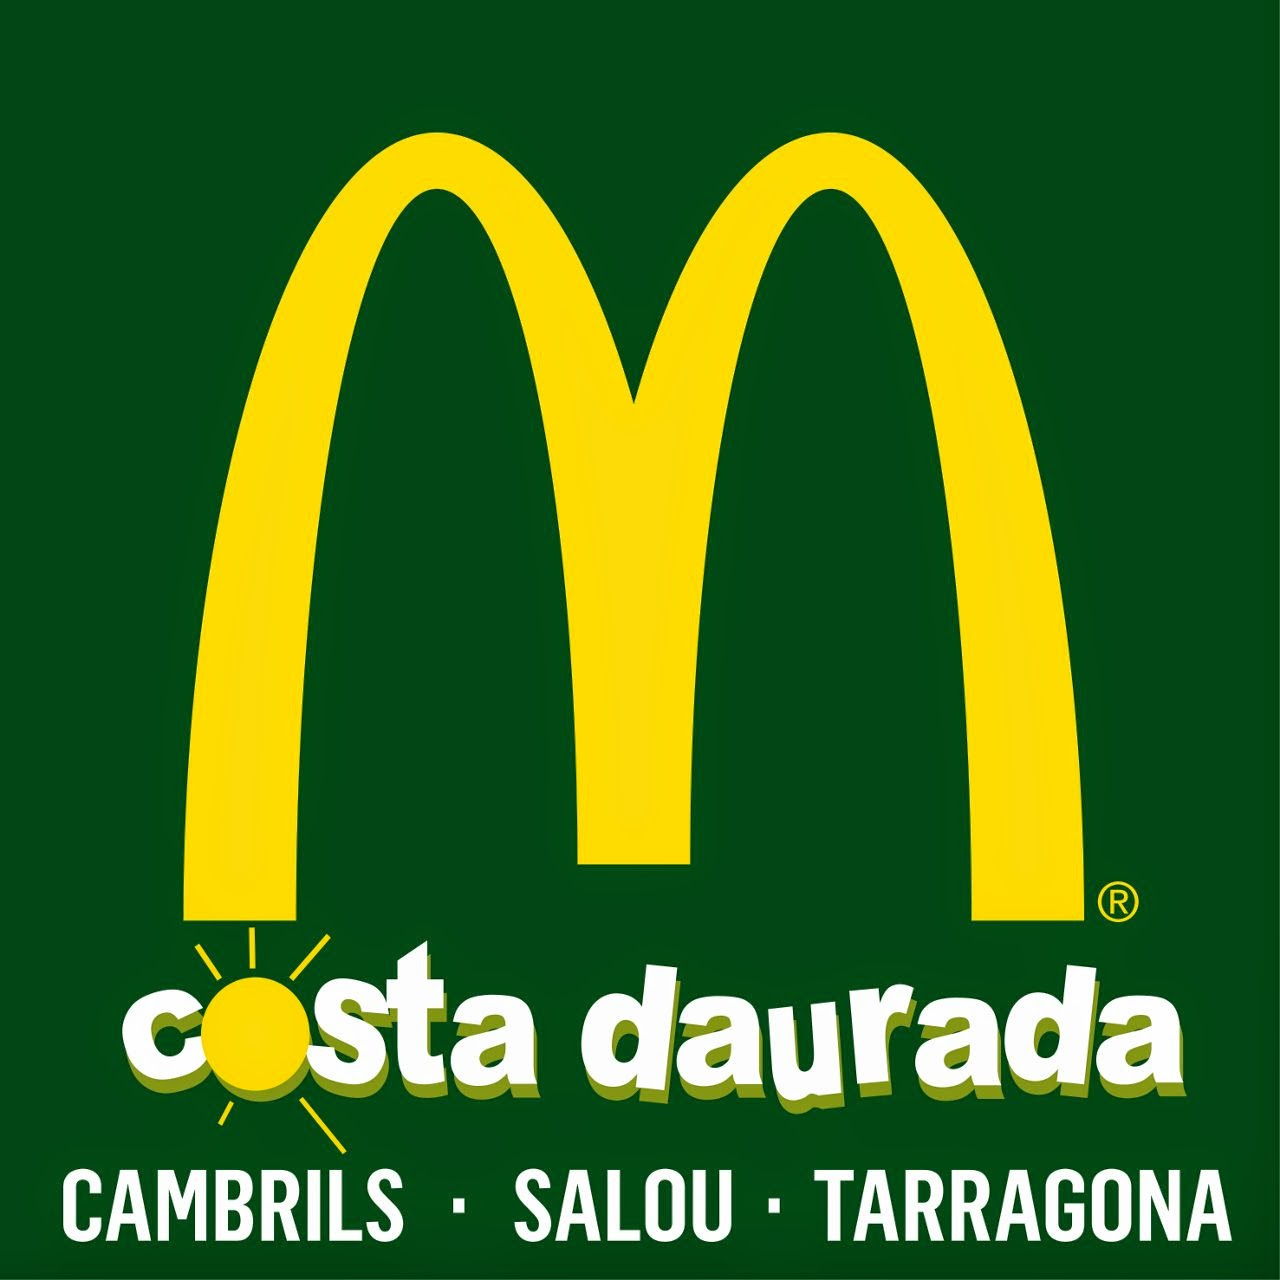 MC Donalds Costa Daurada